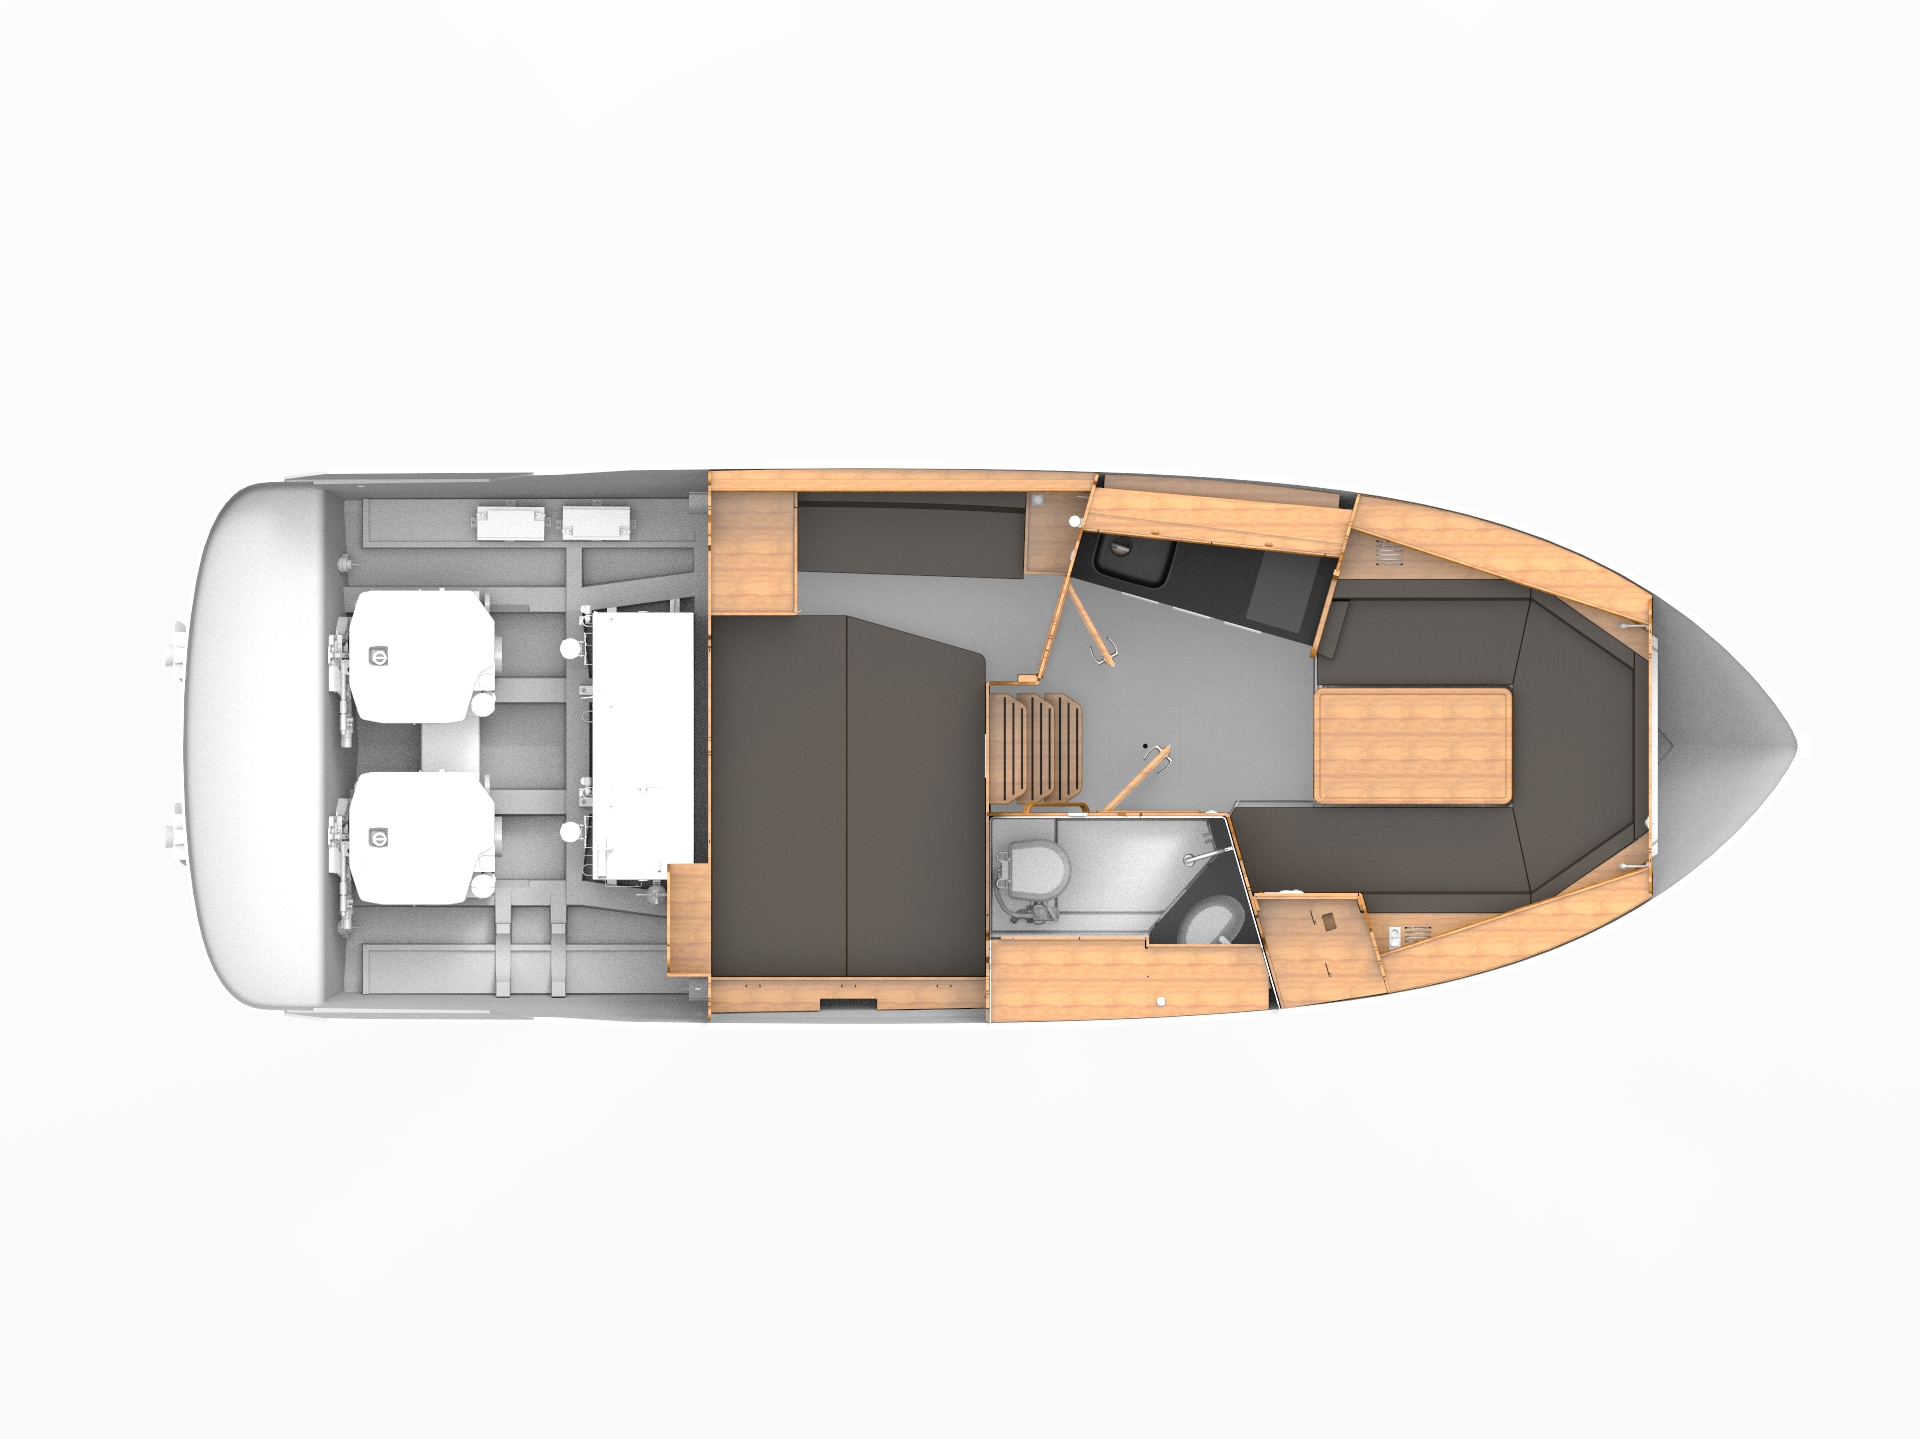 NEW_SPORT_300_Cabin_layout_01